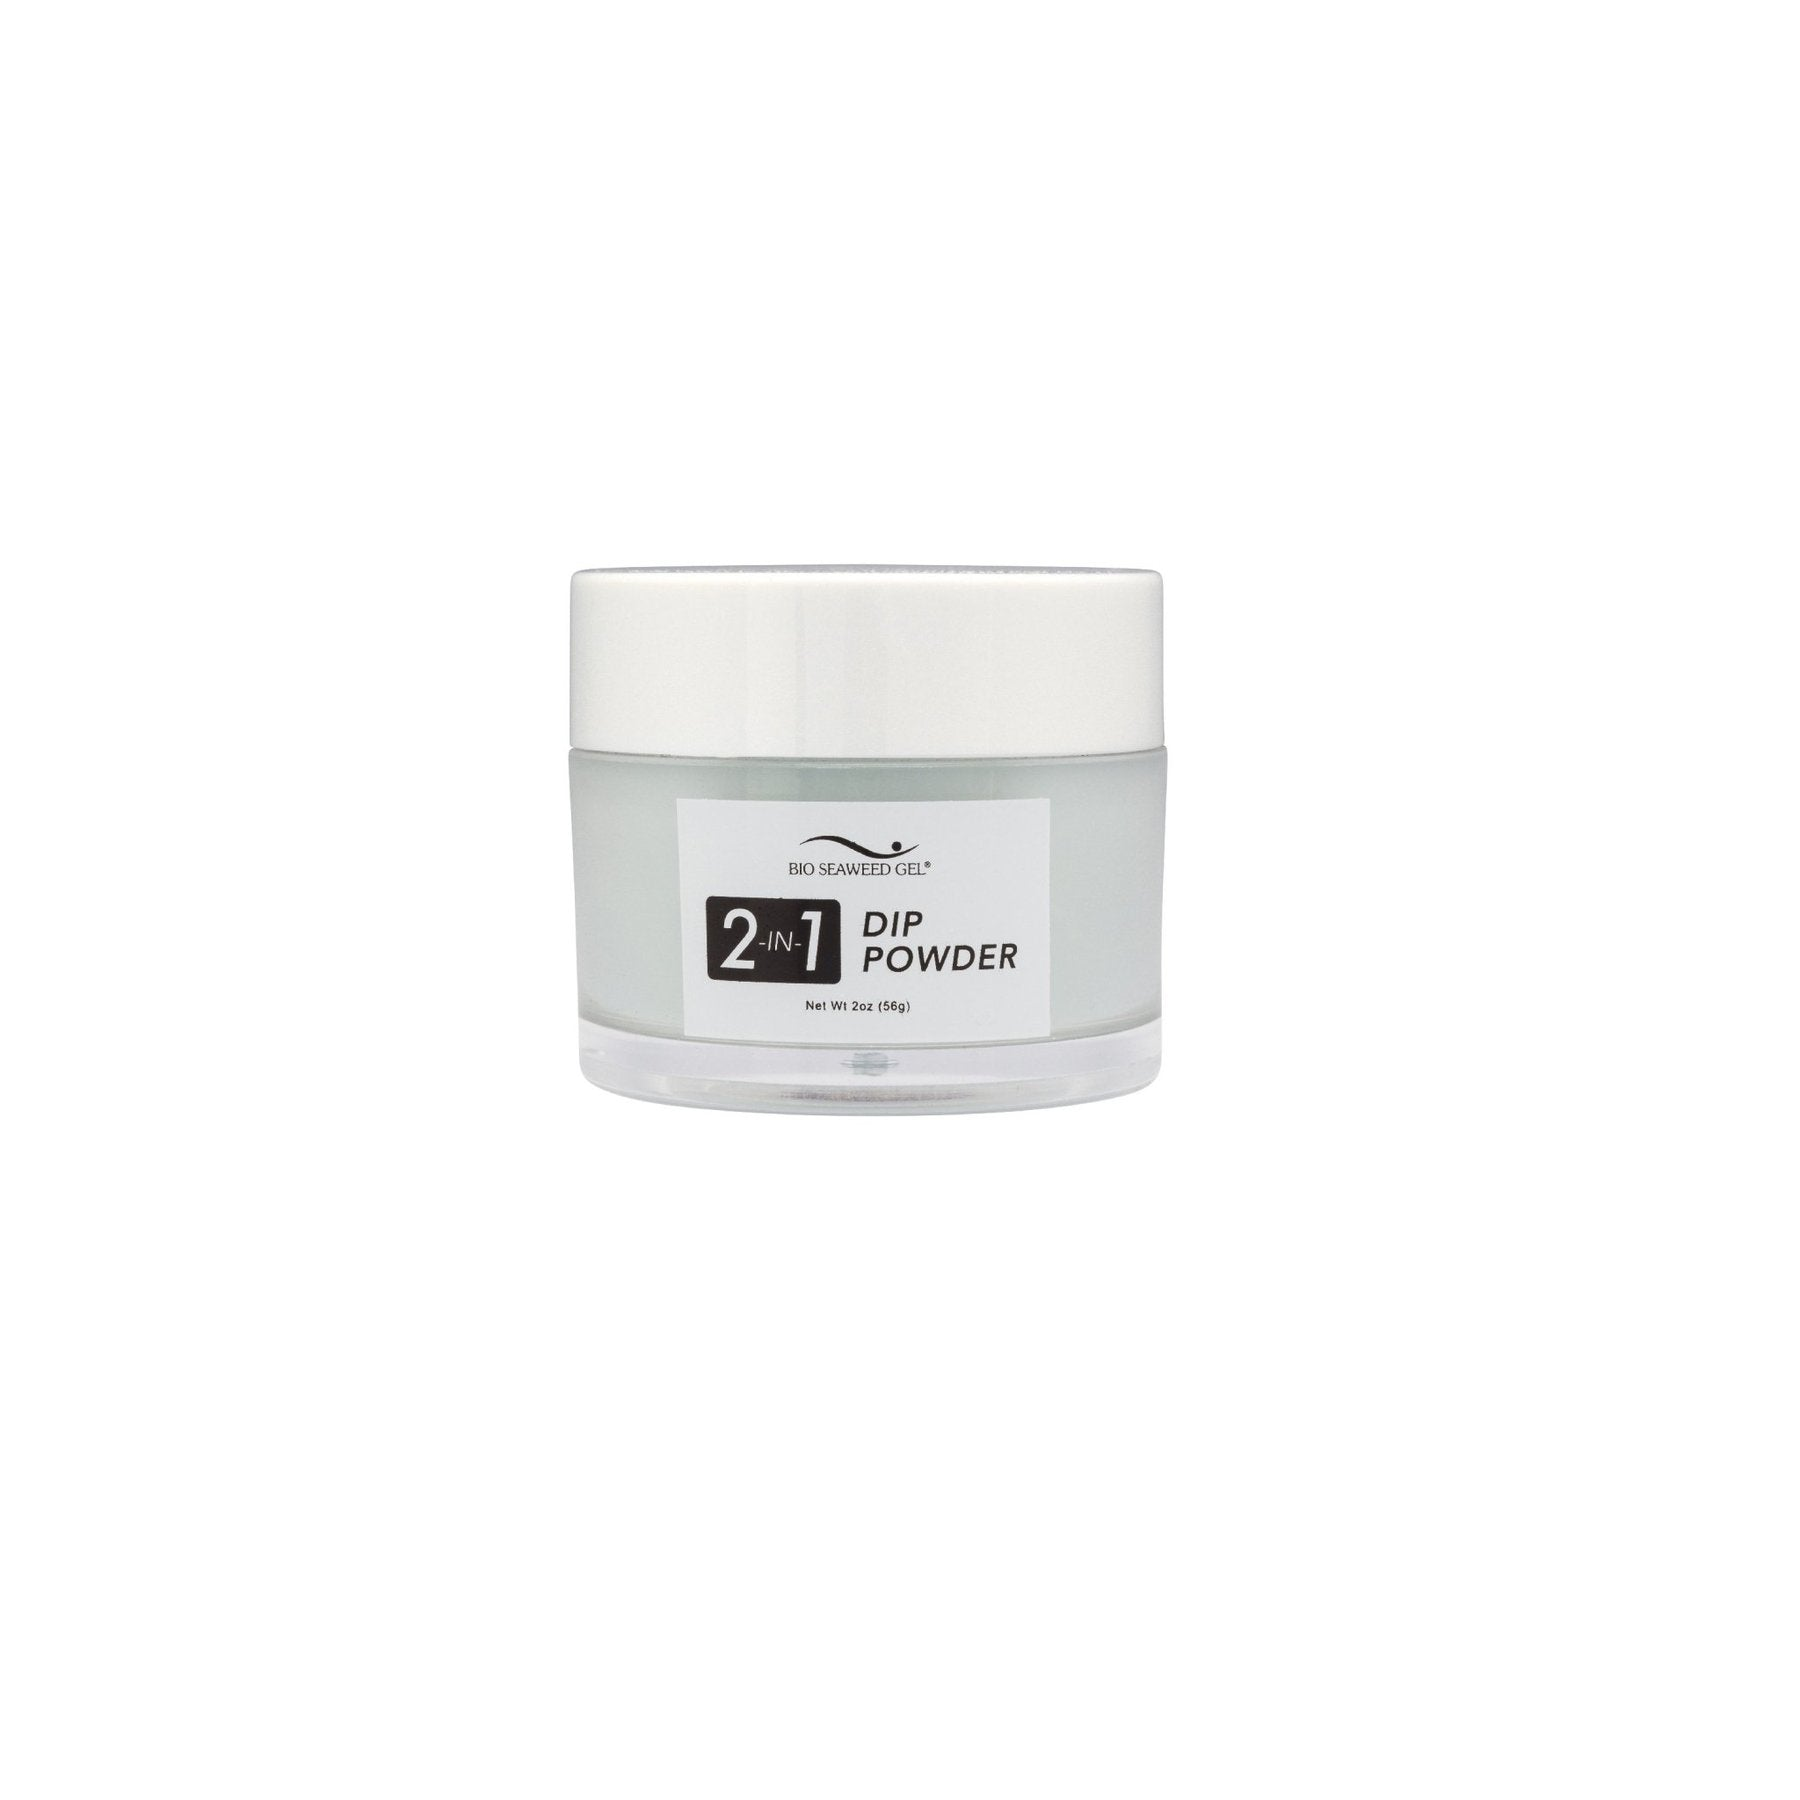 87 GREENHOUSE | Bio Seaweed Gel® Dip Powder System - CM Nails & Beauty Supply